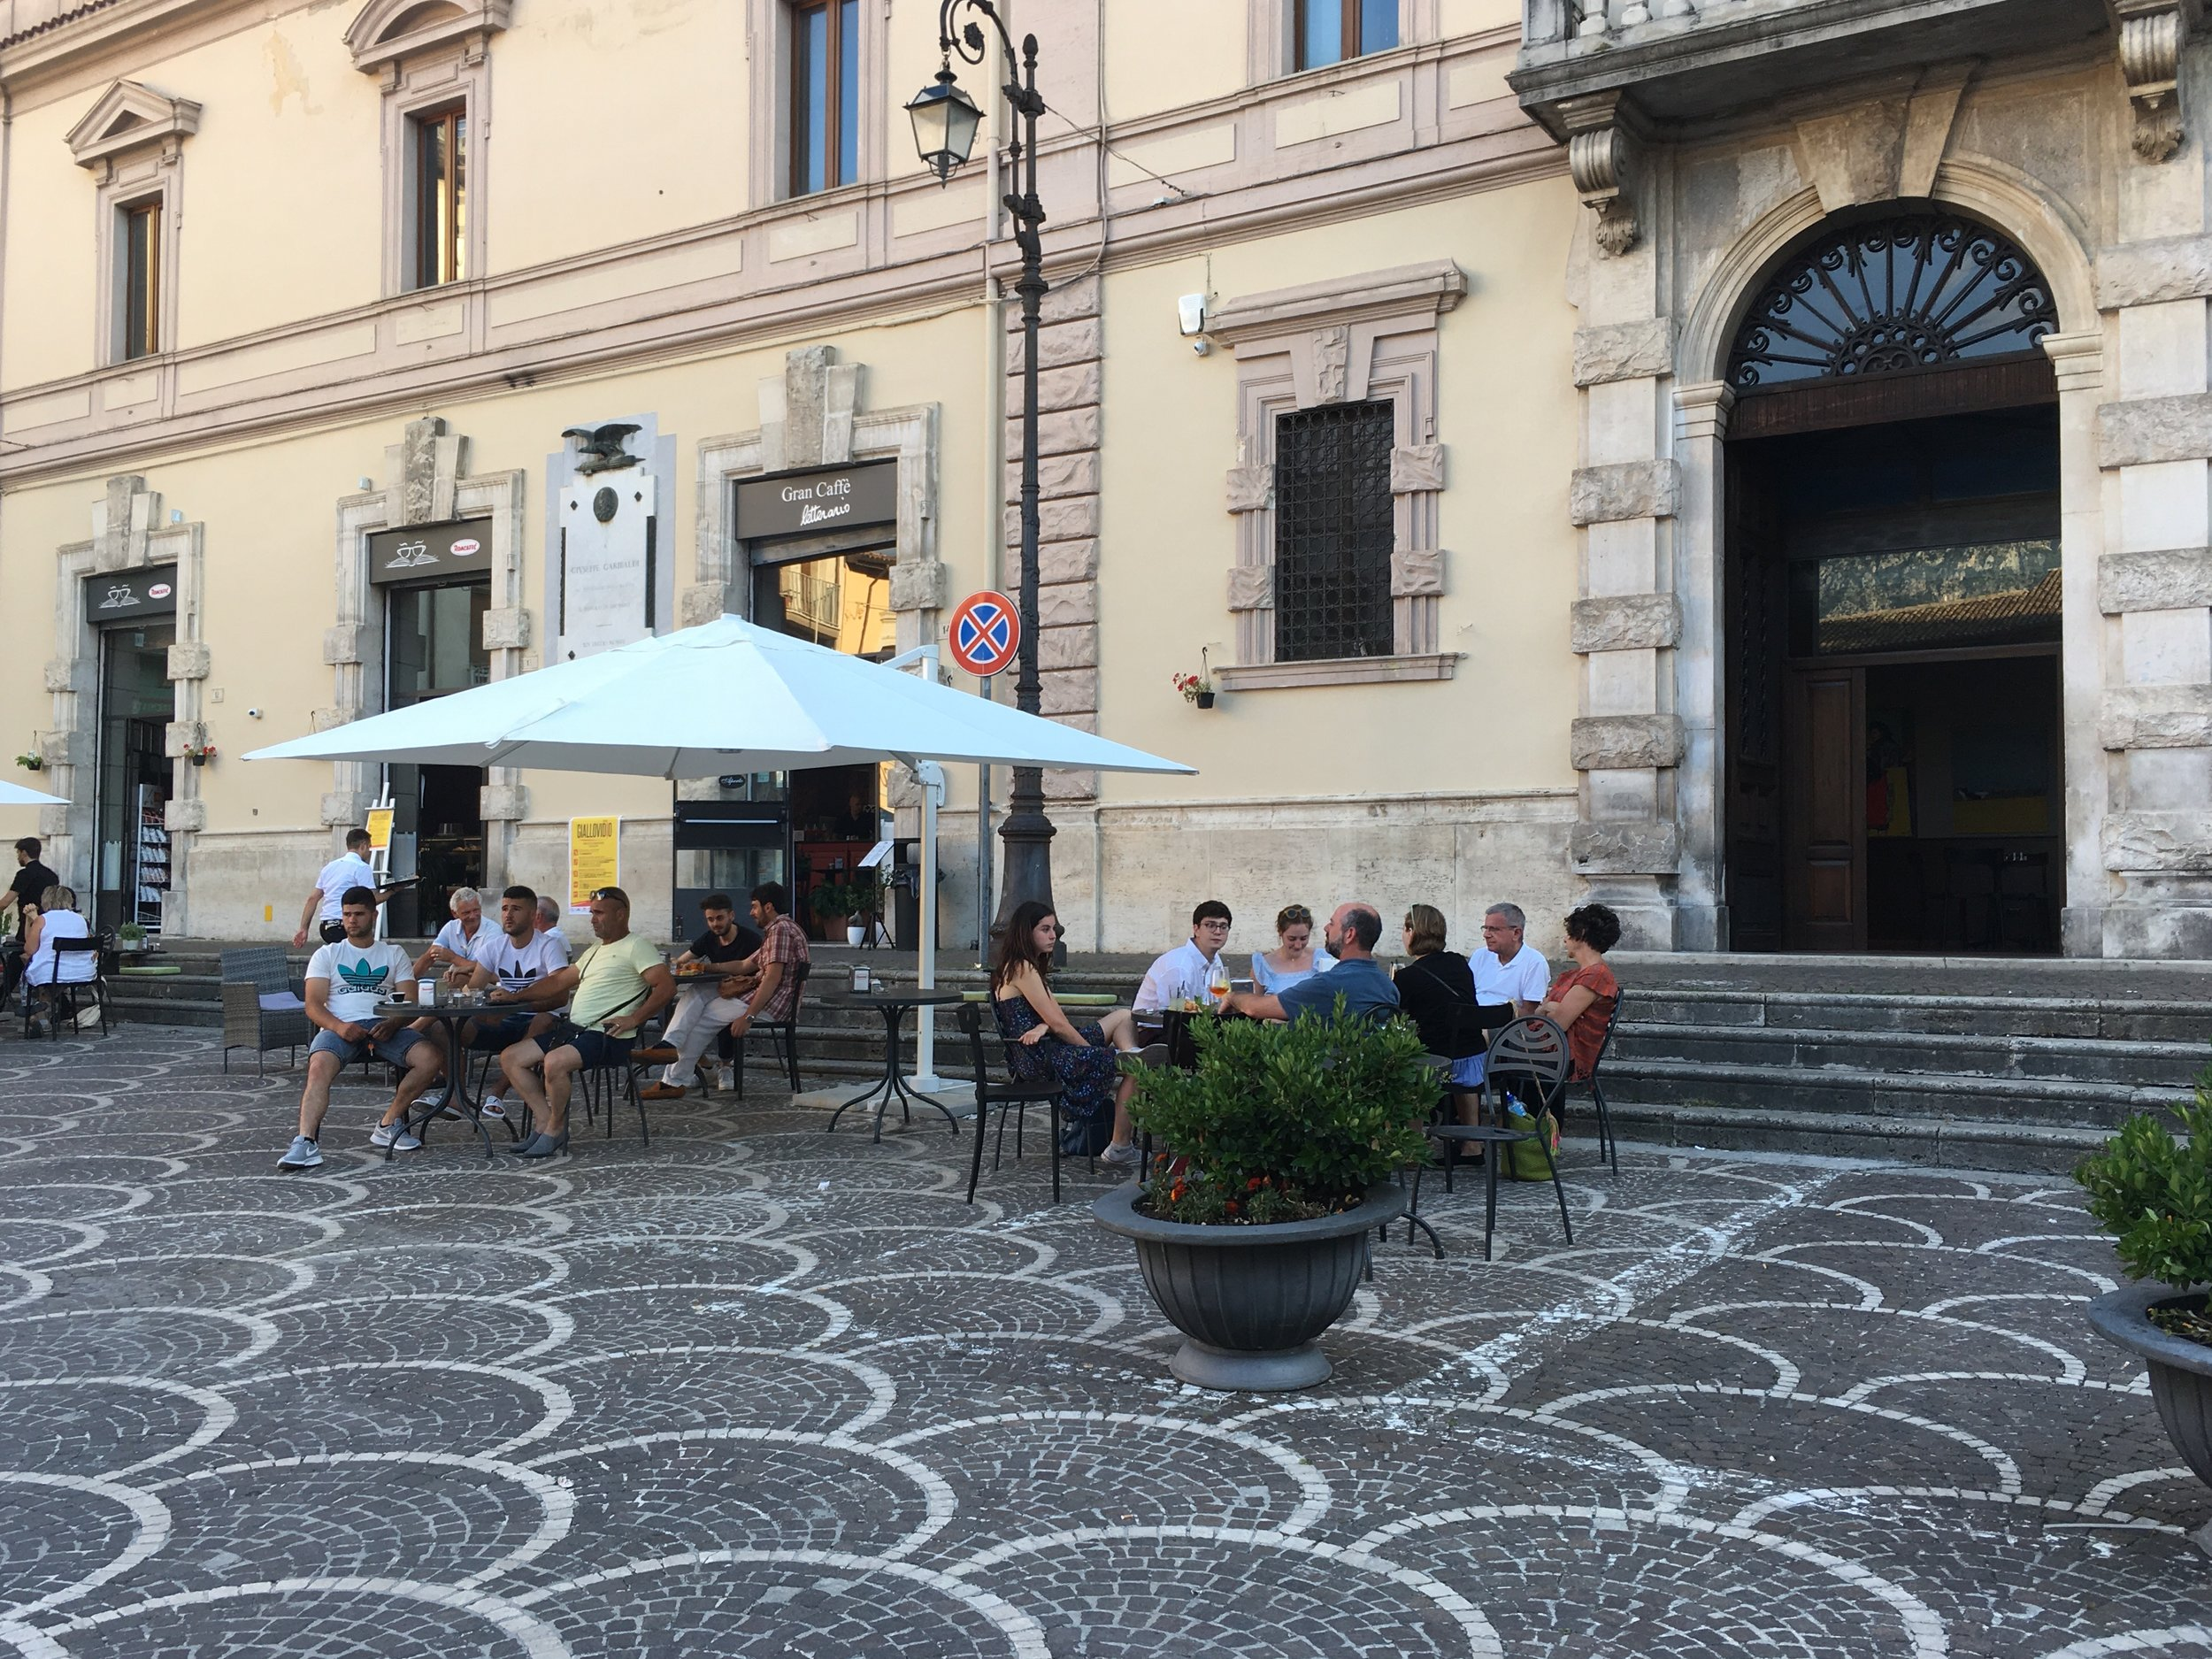 An aperitivo with friends